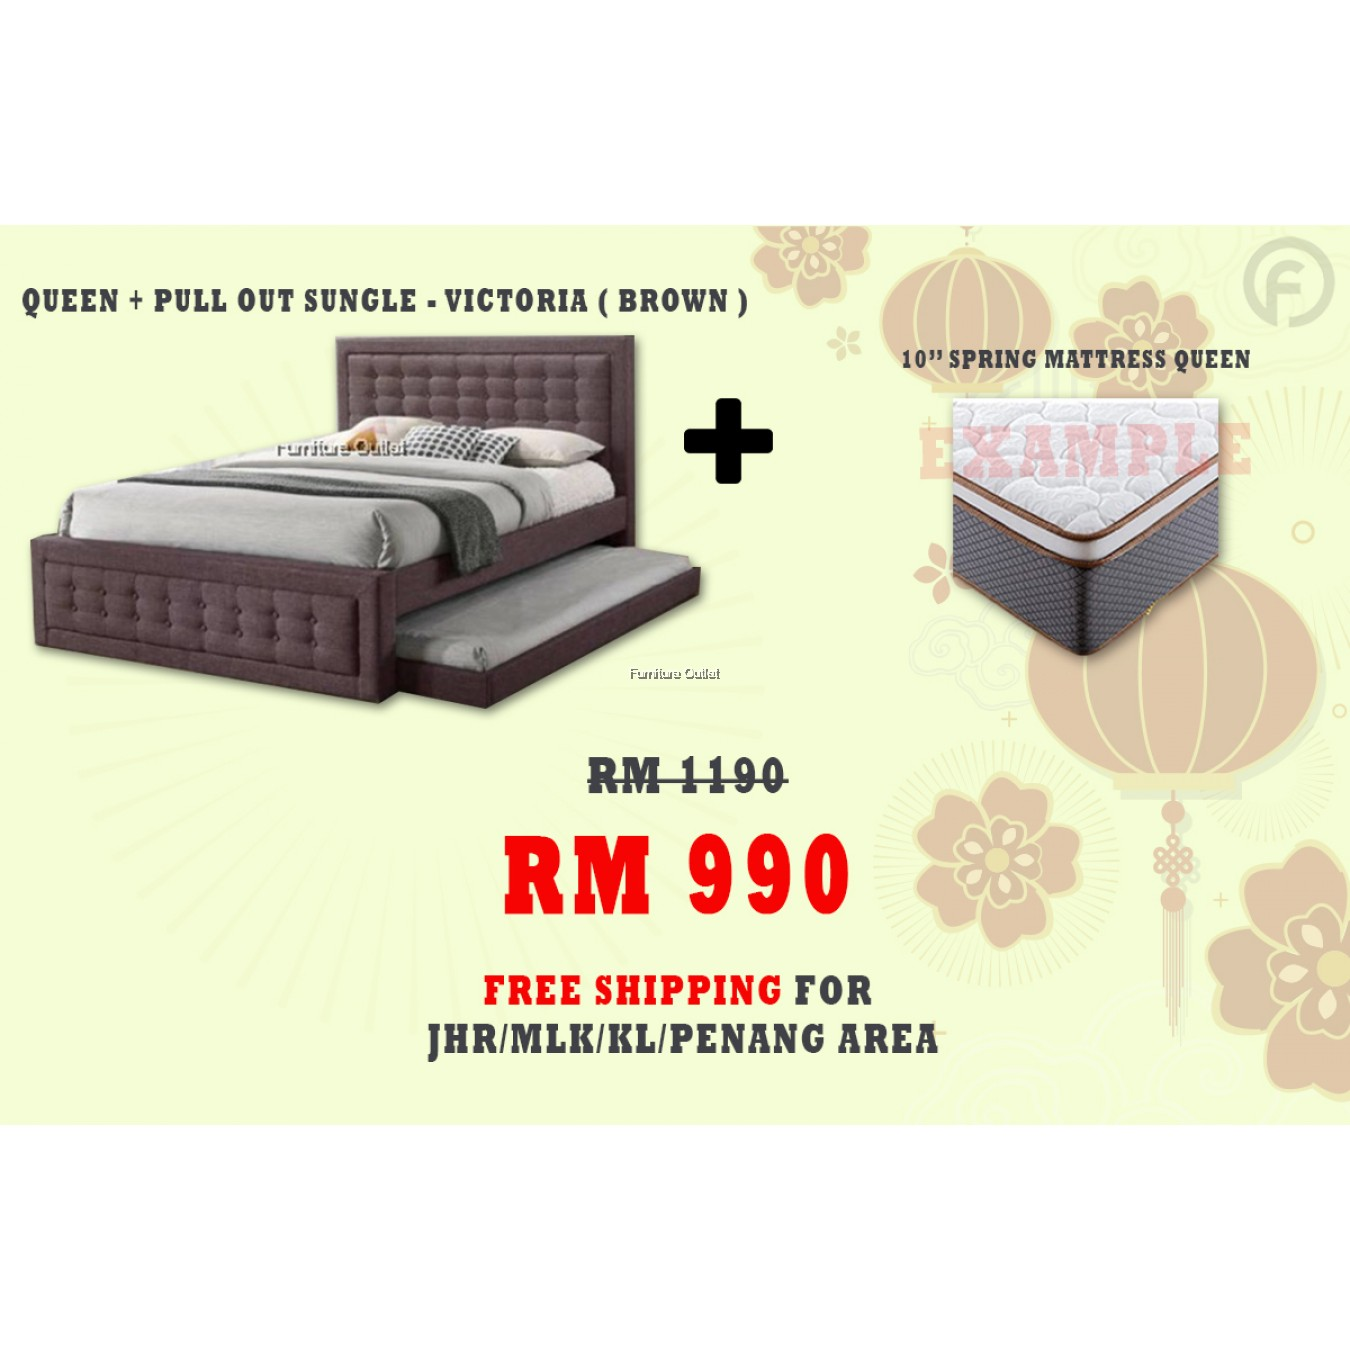 [ FREE SHIPPING ] VICTORIA QUEEN + PULLOUT SINGLE BED + 10'' SPRING QUEEN MATTRESS